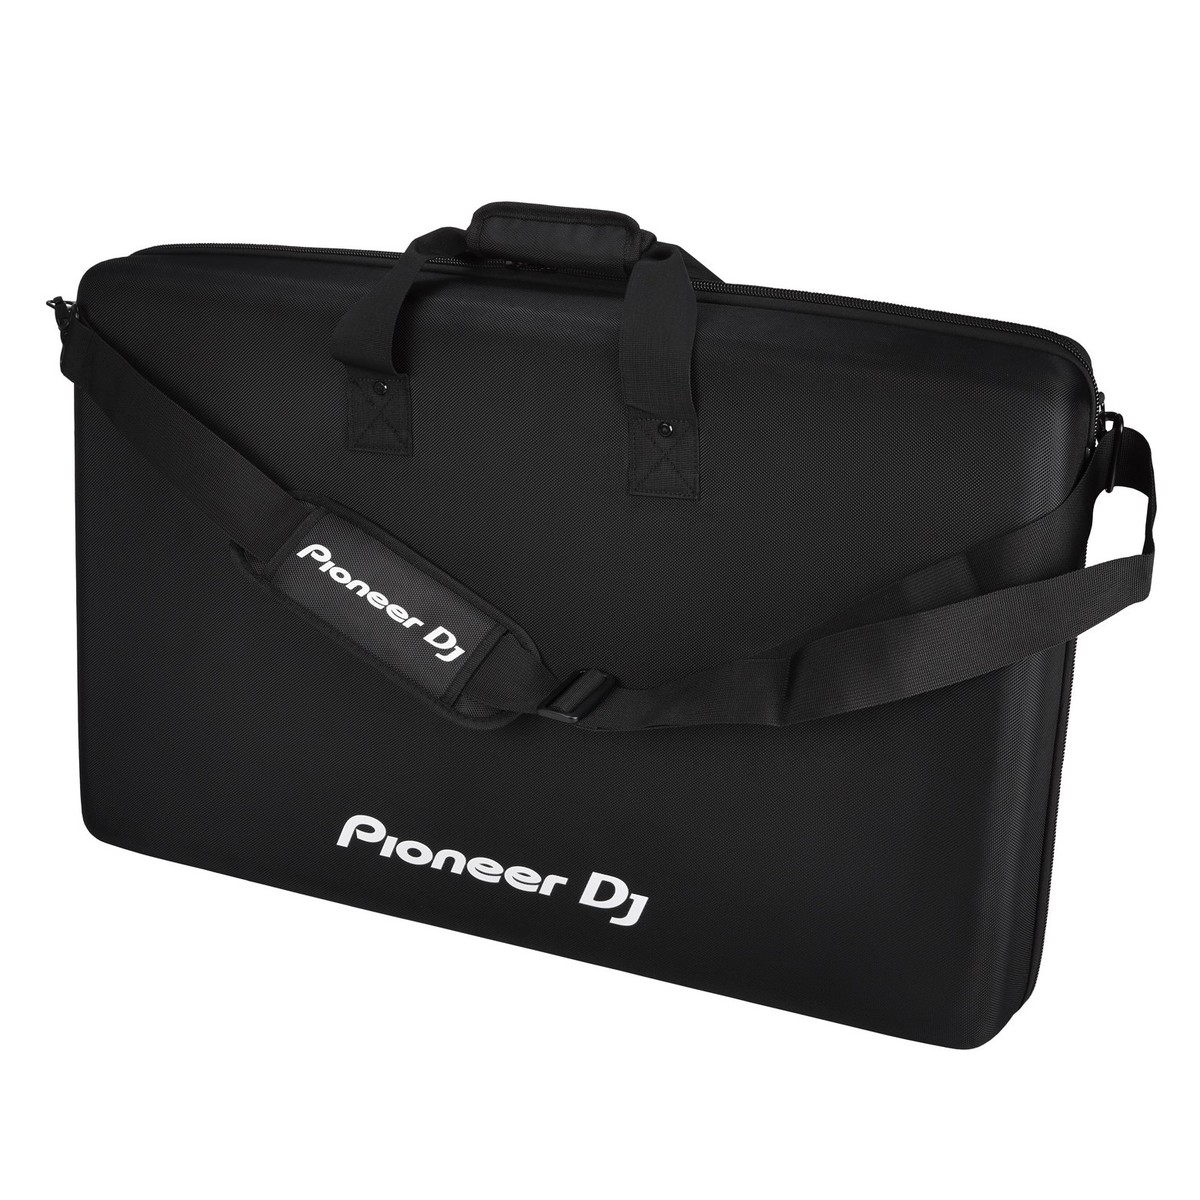 Pioneer DJC RX2 Bag for XDJ RX2